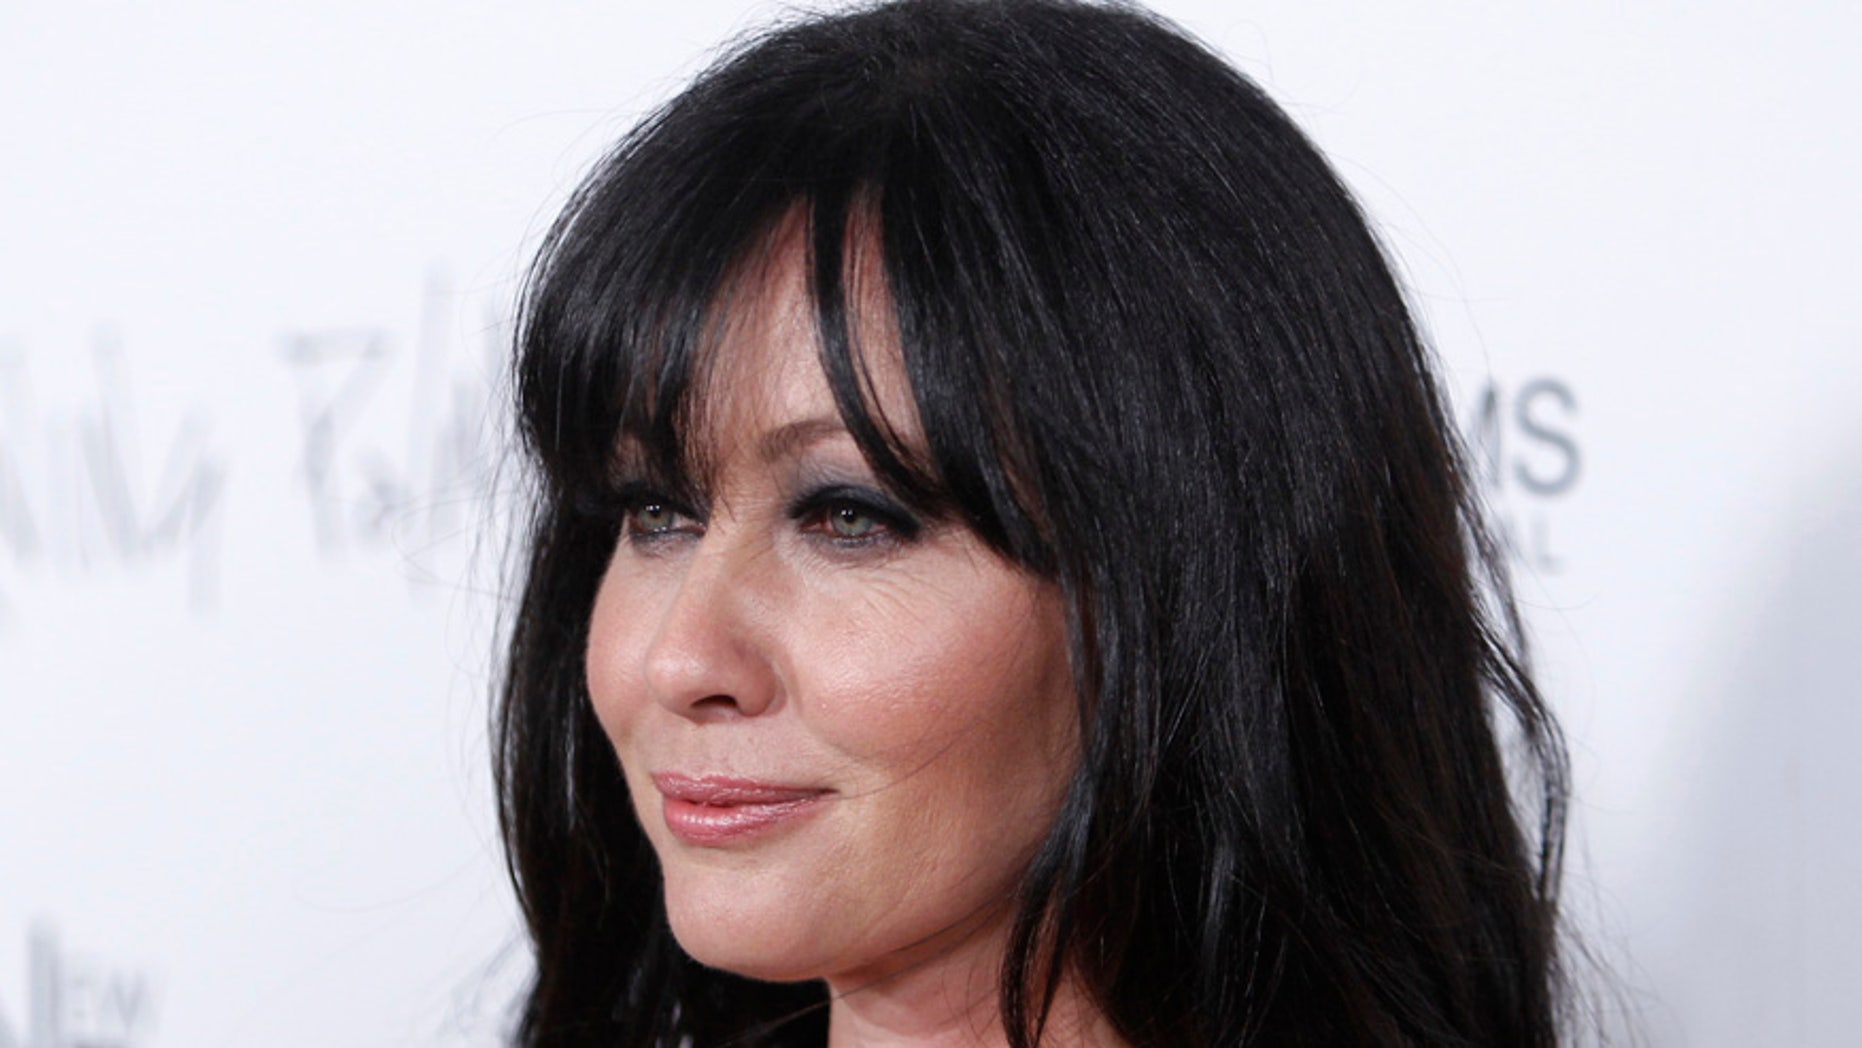 Shannen Doherty, here in a 2011 file photo, was diagnosed with breast cancer in August 2015 and revealed in April 2017 she was in remission.